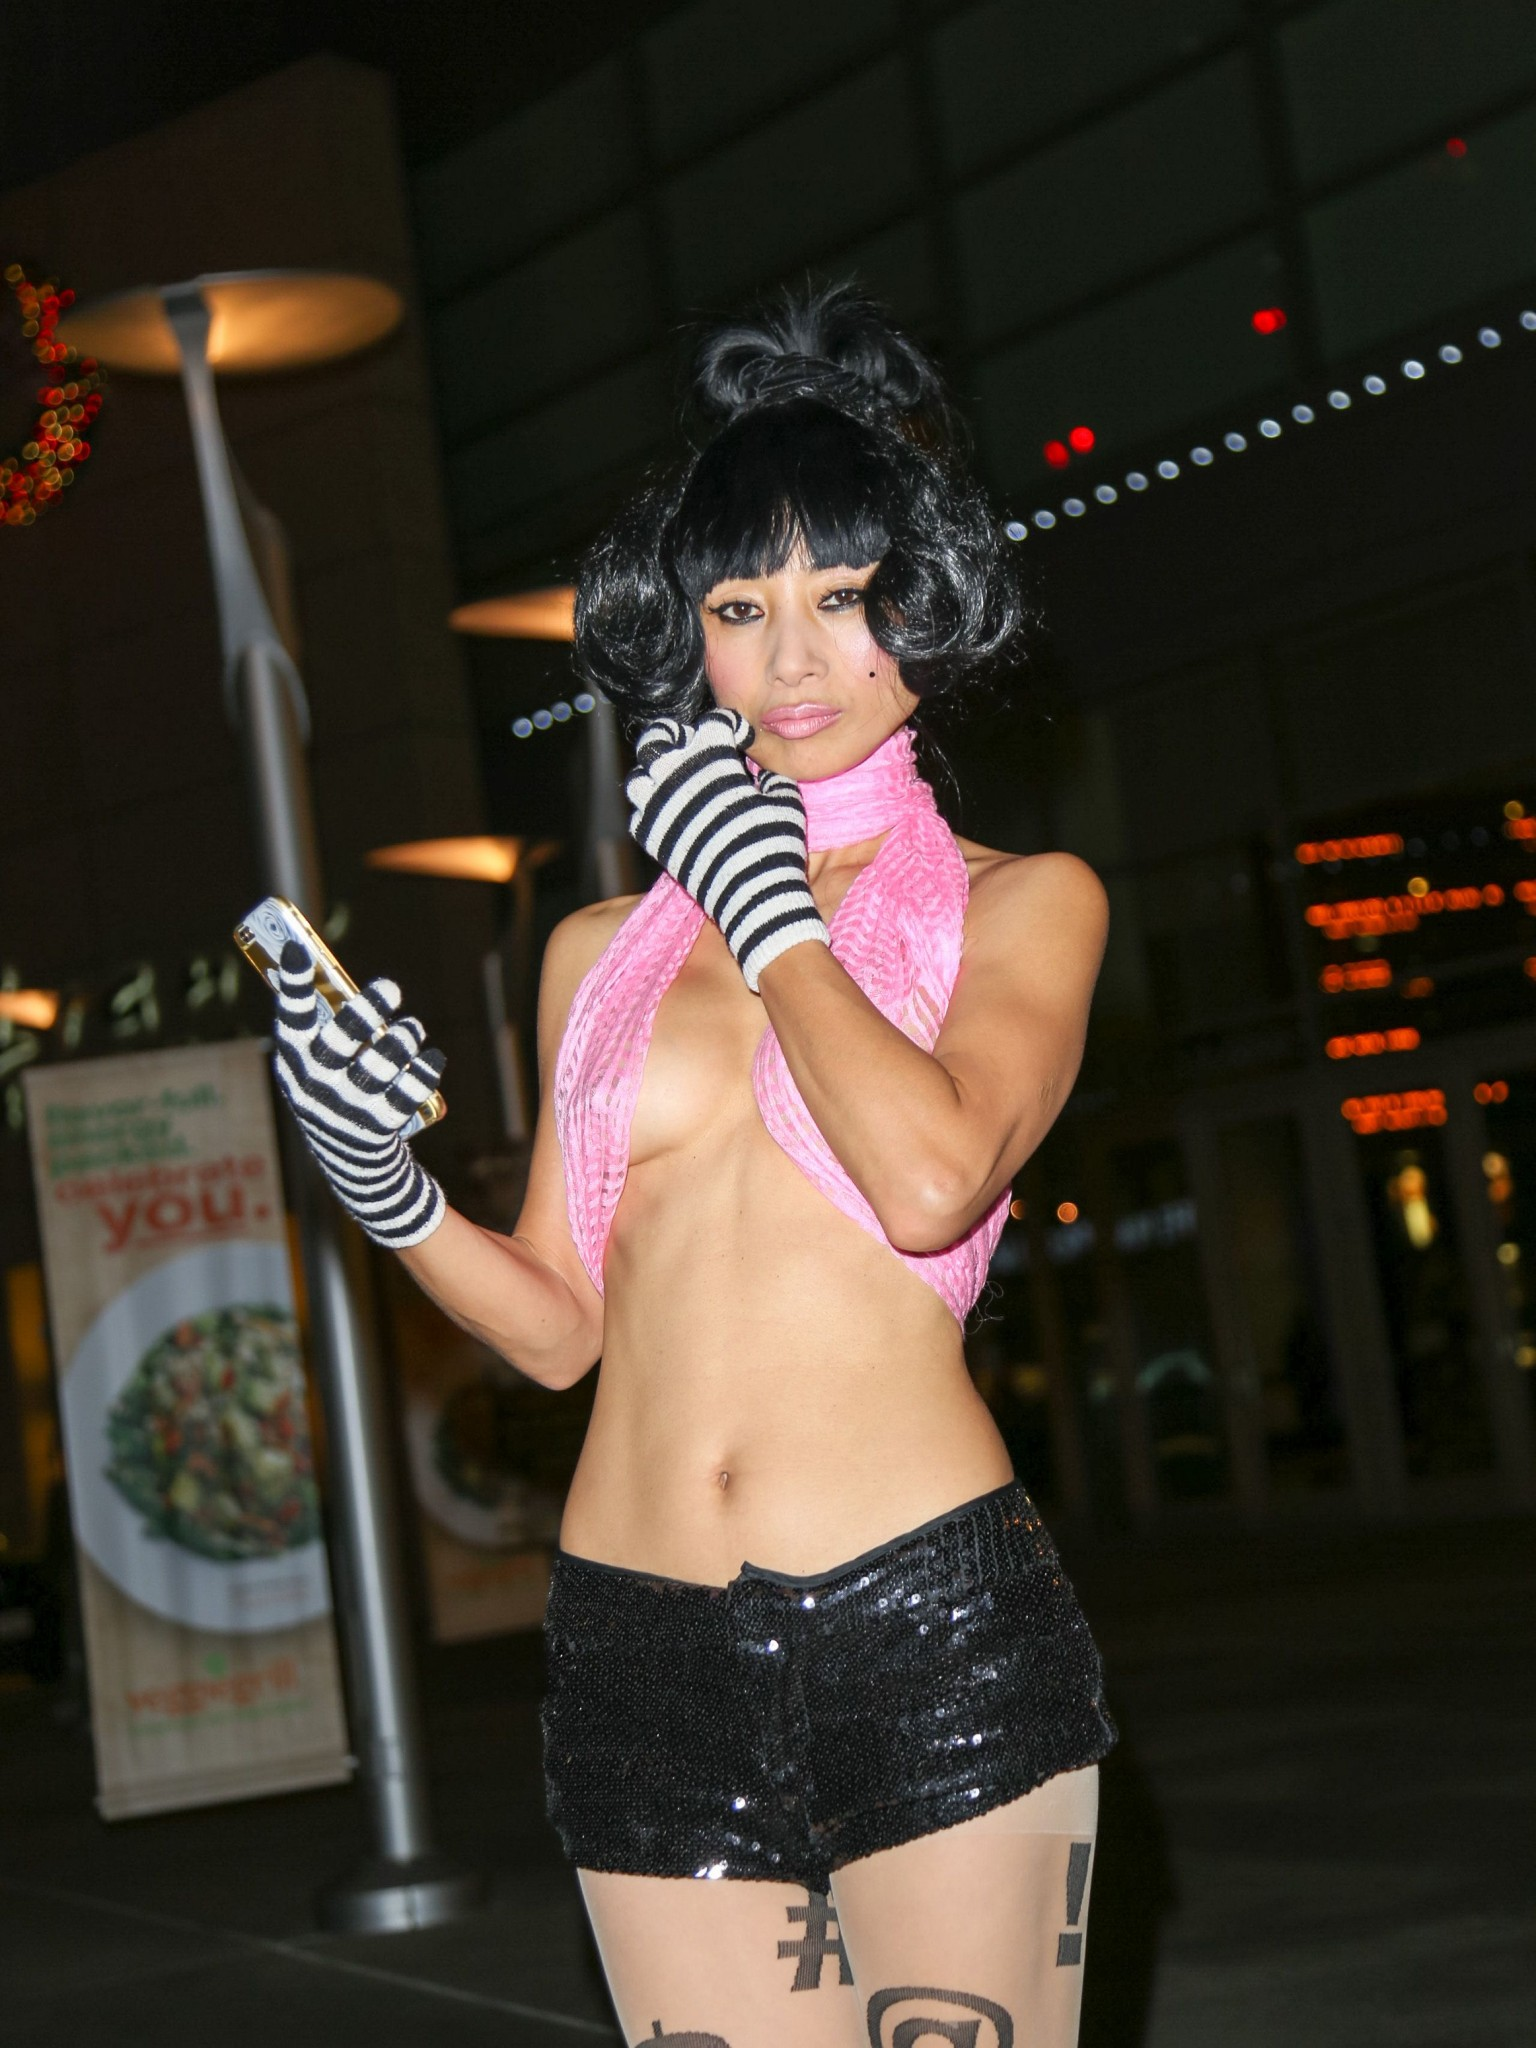 bai-ling-slight-see-through-to-nipples-at-arclight-theatre-09